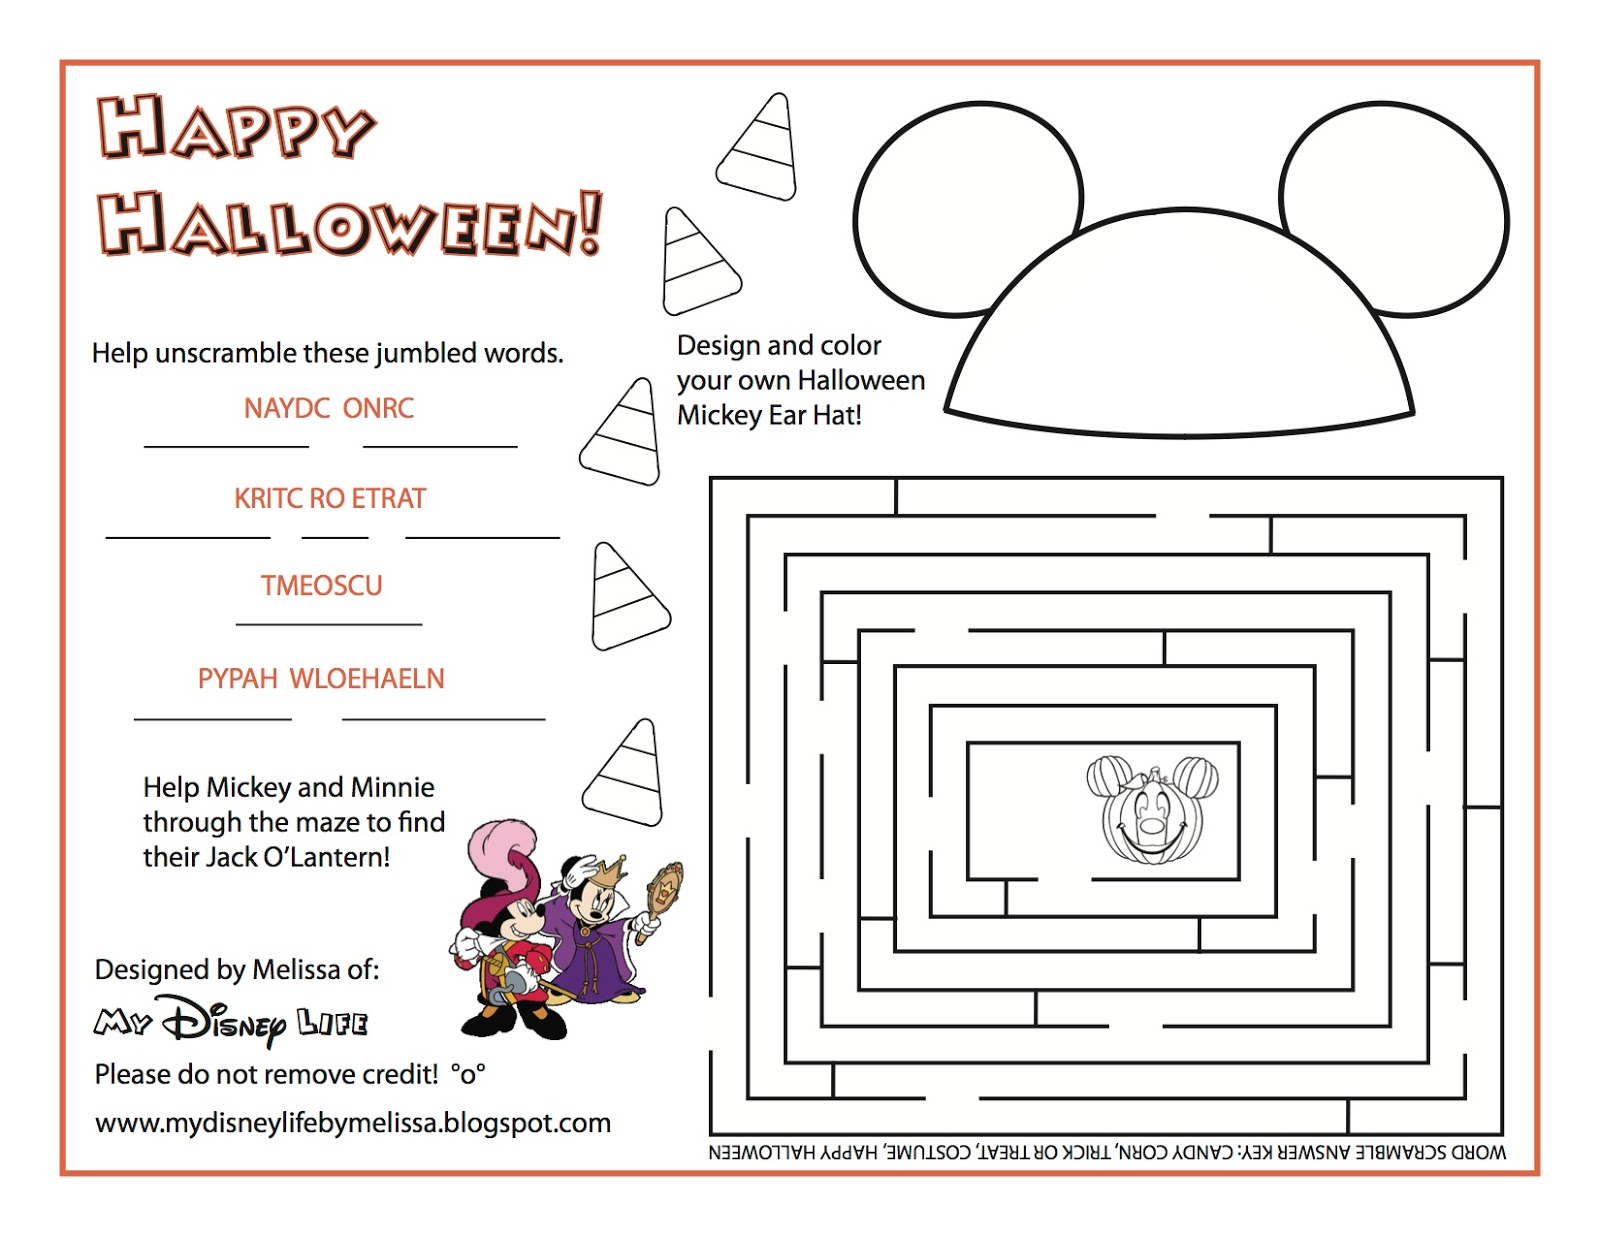 My Disney Life Free Halloween Printables